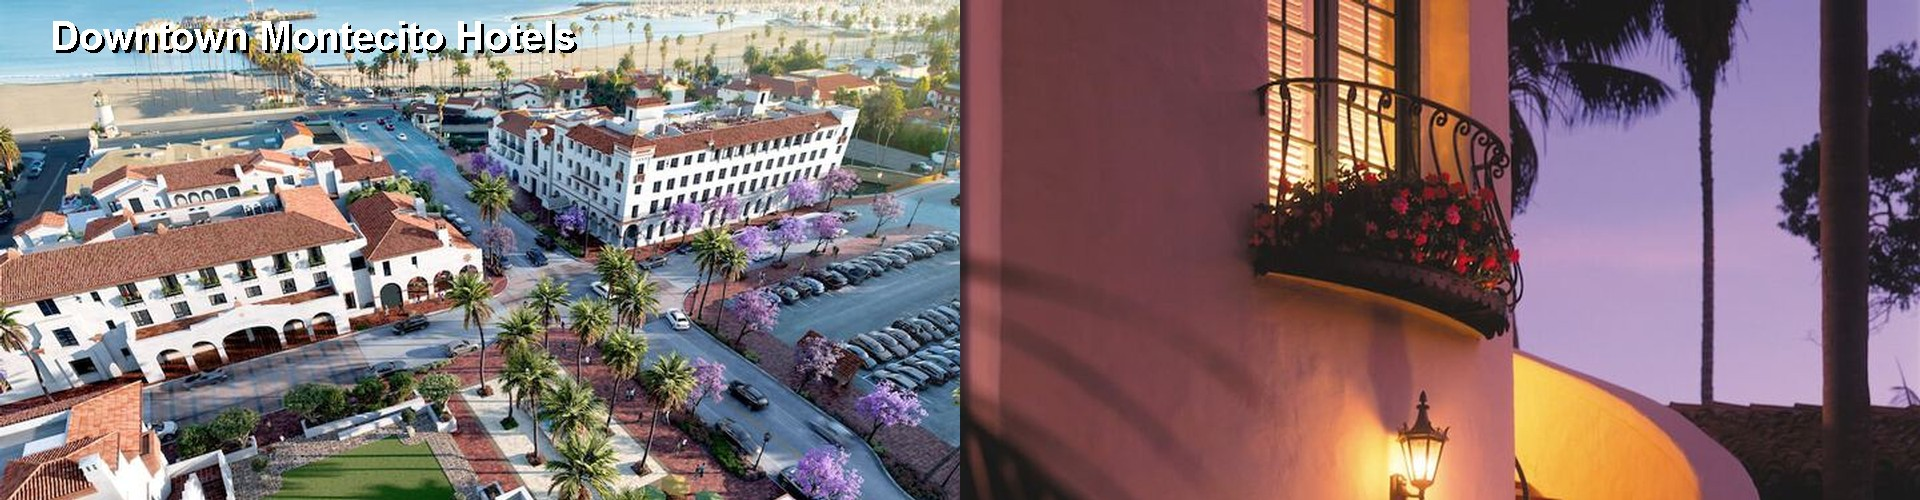 5 Best Hotels near Downtown Montecito